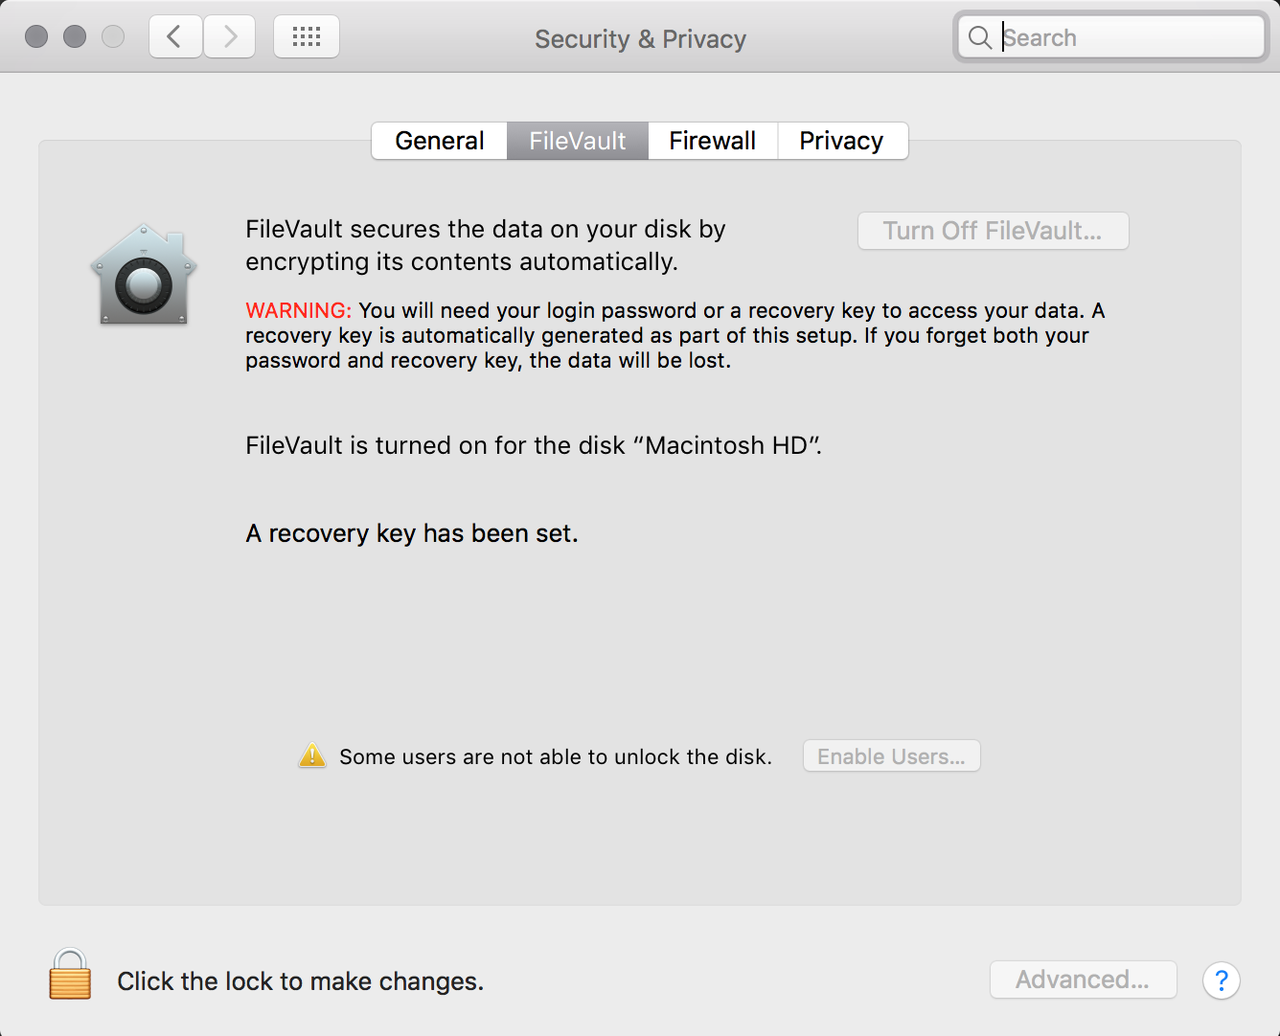 /images/filevault.png